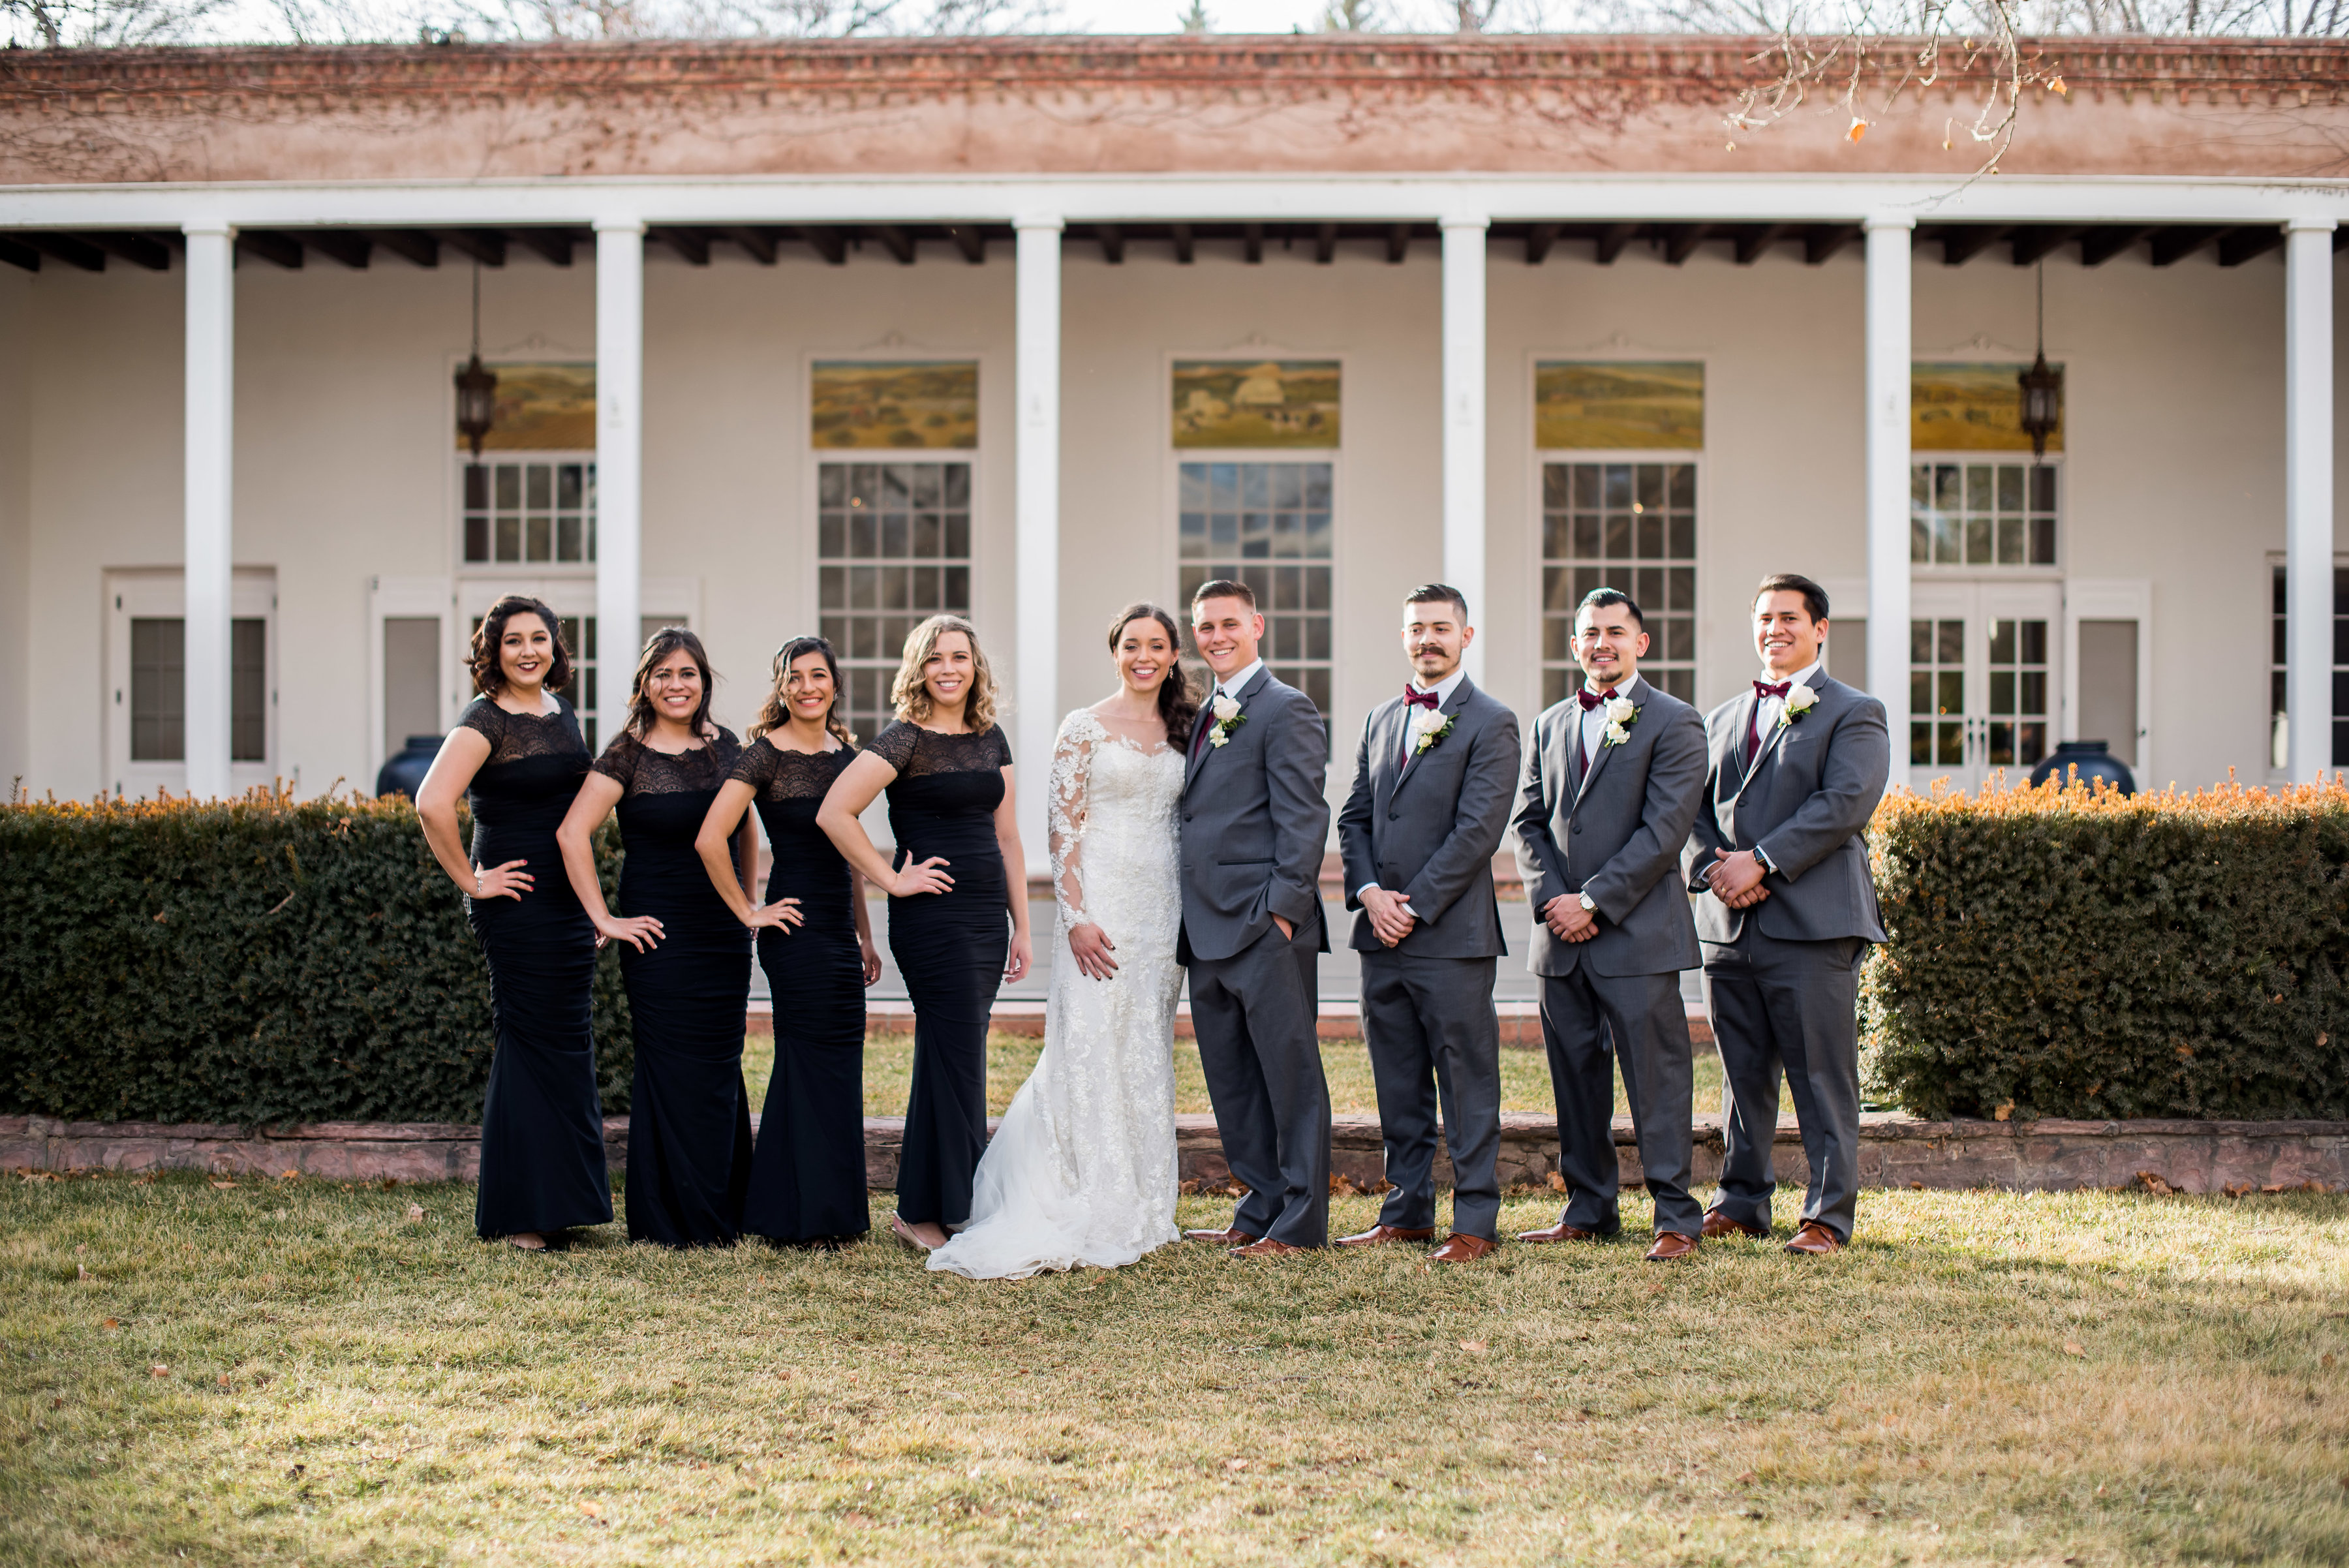 wedding planning design decor inspo real local New Mexico Perfect Wedding Guide party bridesmaids groomsmen lace long sleeve group outdoor natural light bride groom love romantic professional